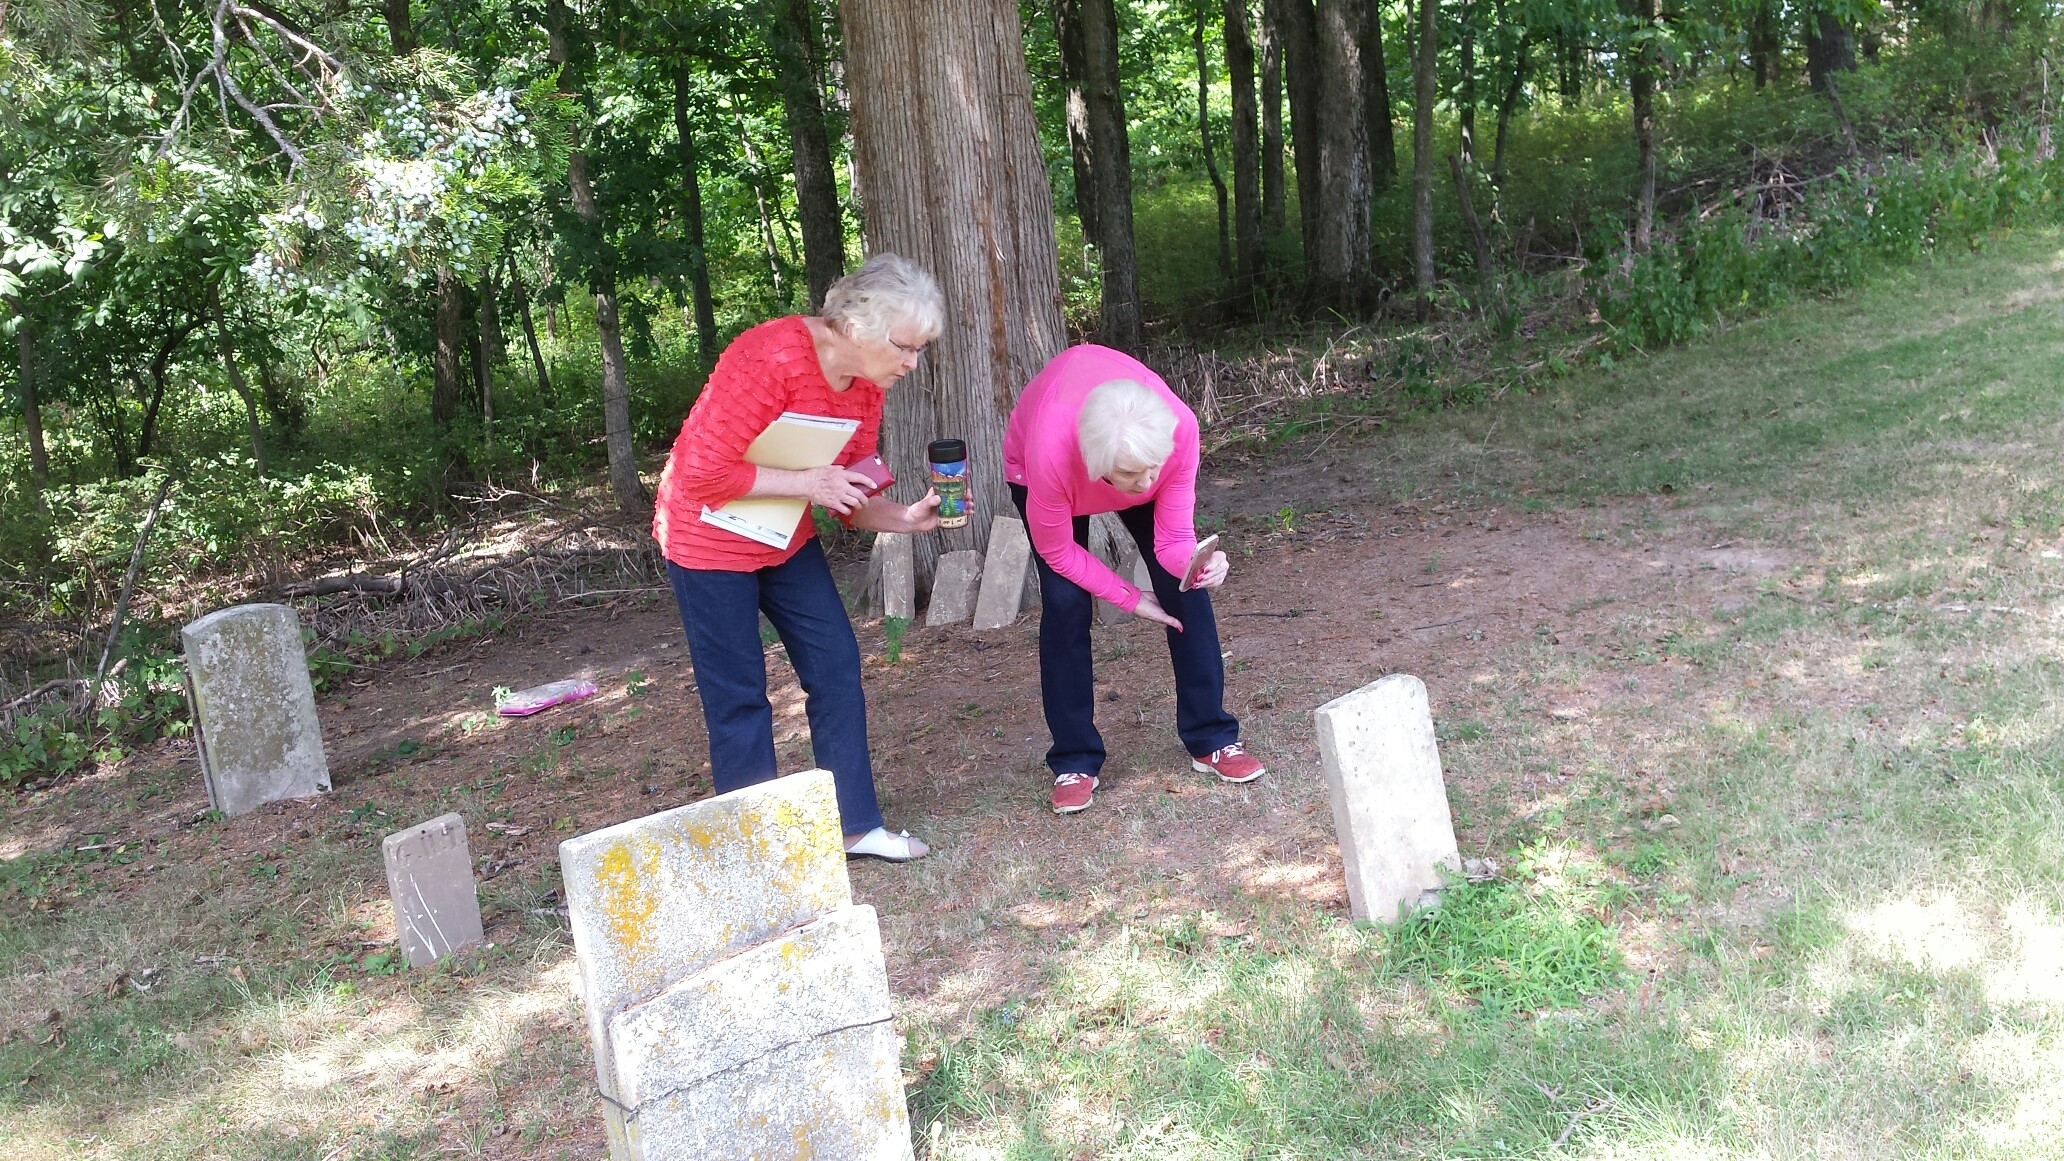 Reta and Myrna at Franks Cemetery, Richfield Illinois